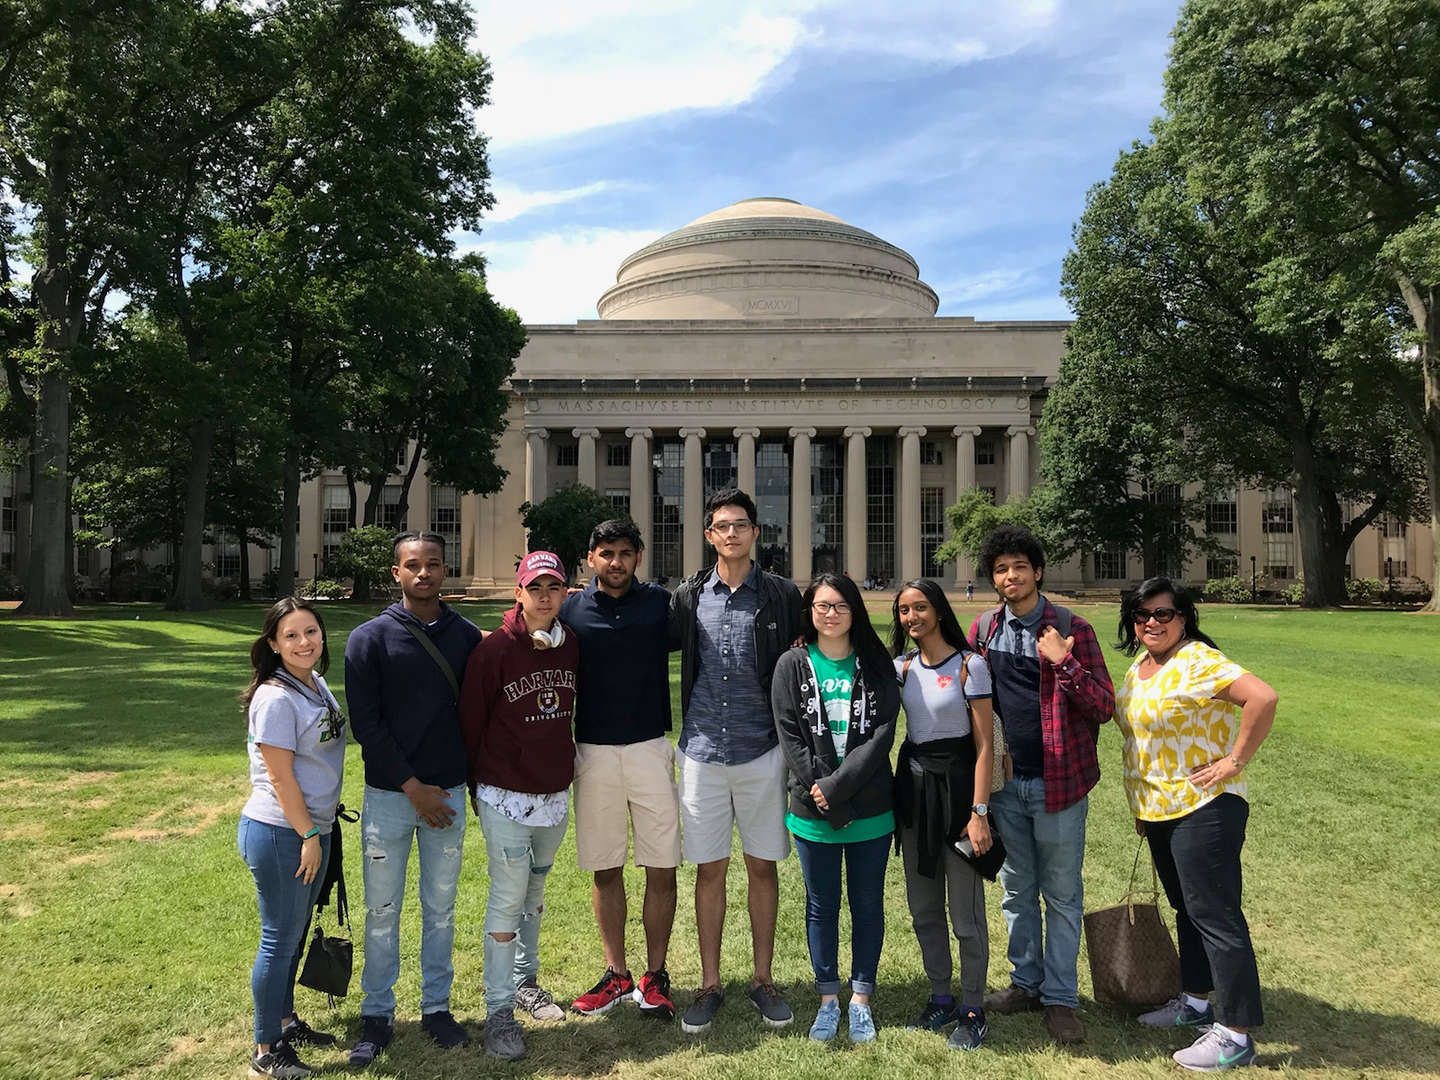 Seven students and two standing in front on a building at Harvard University